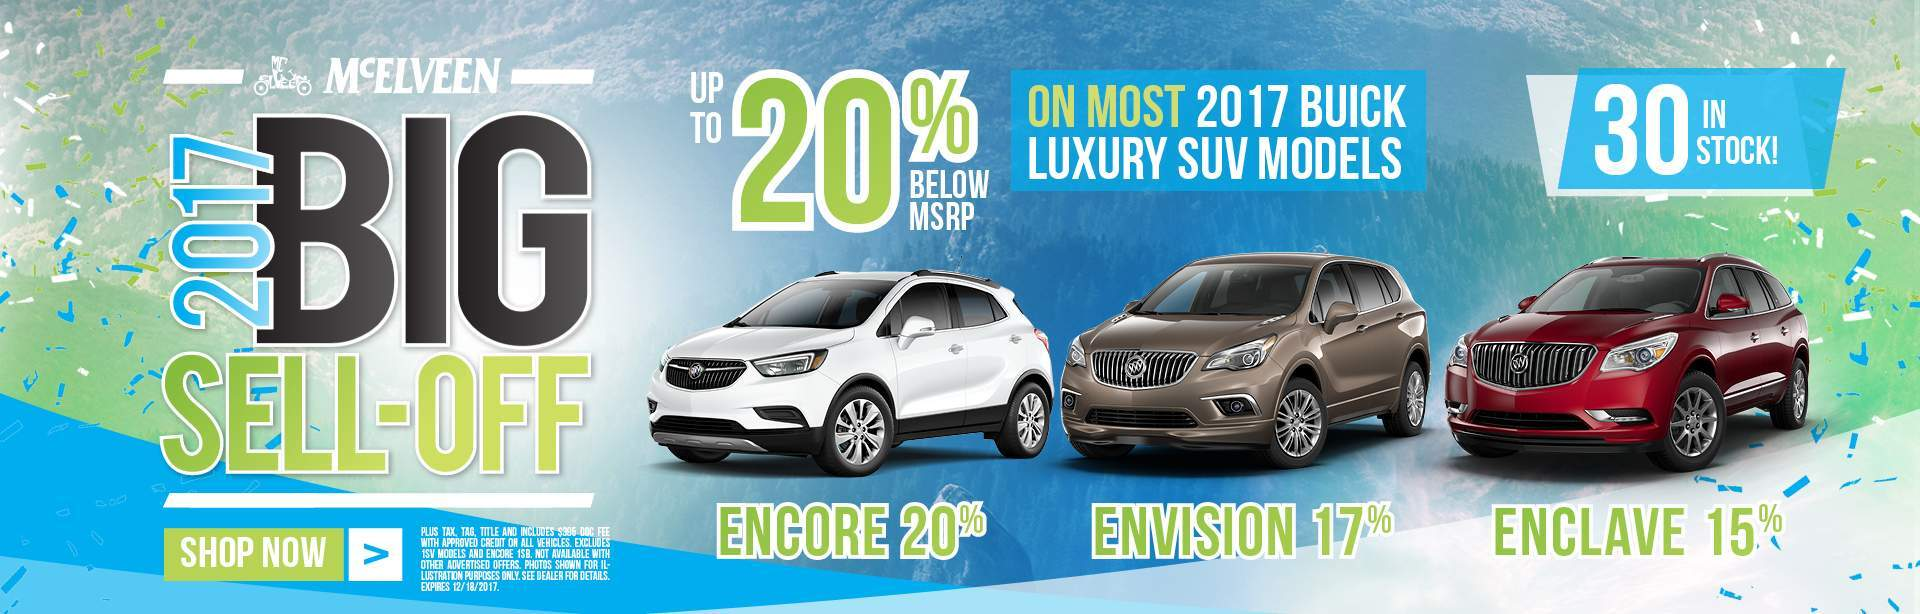 2017 Buick Clearance